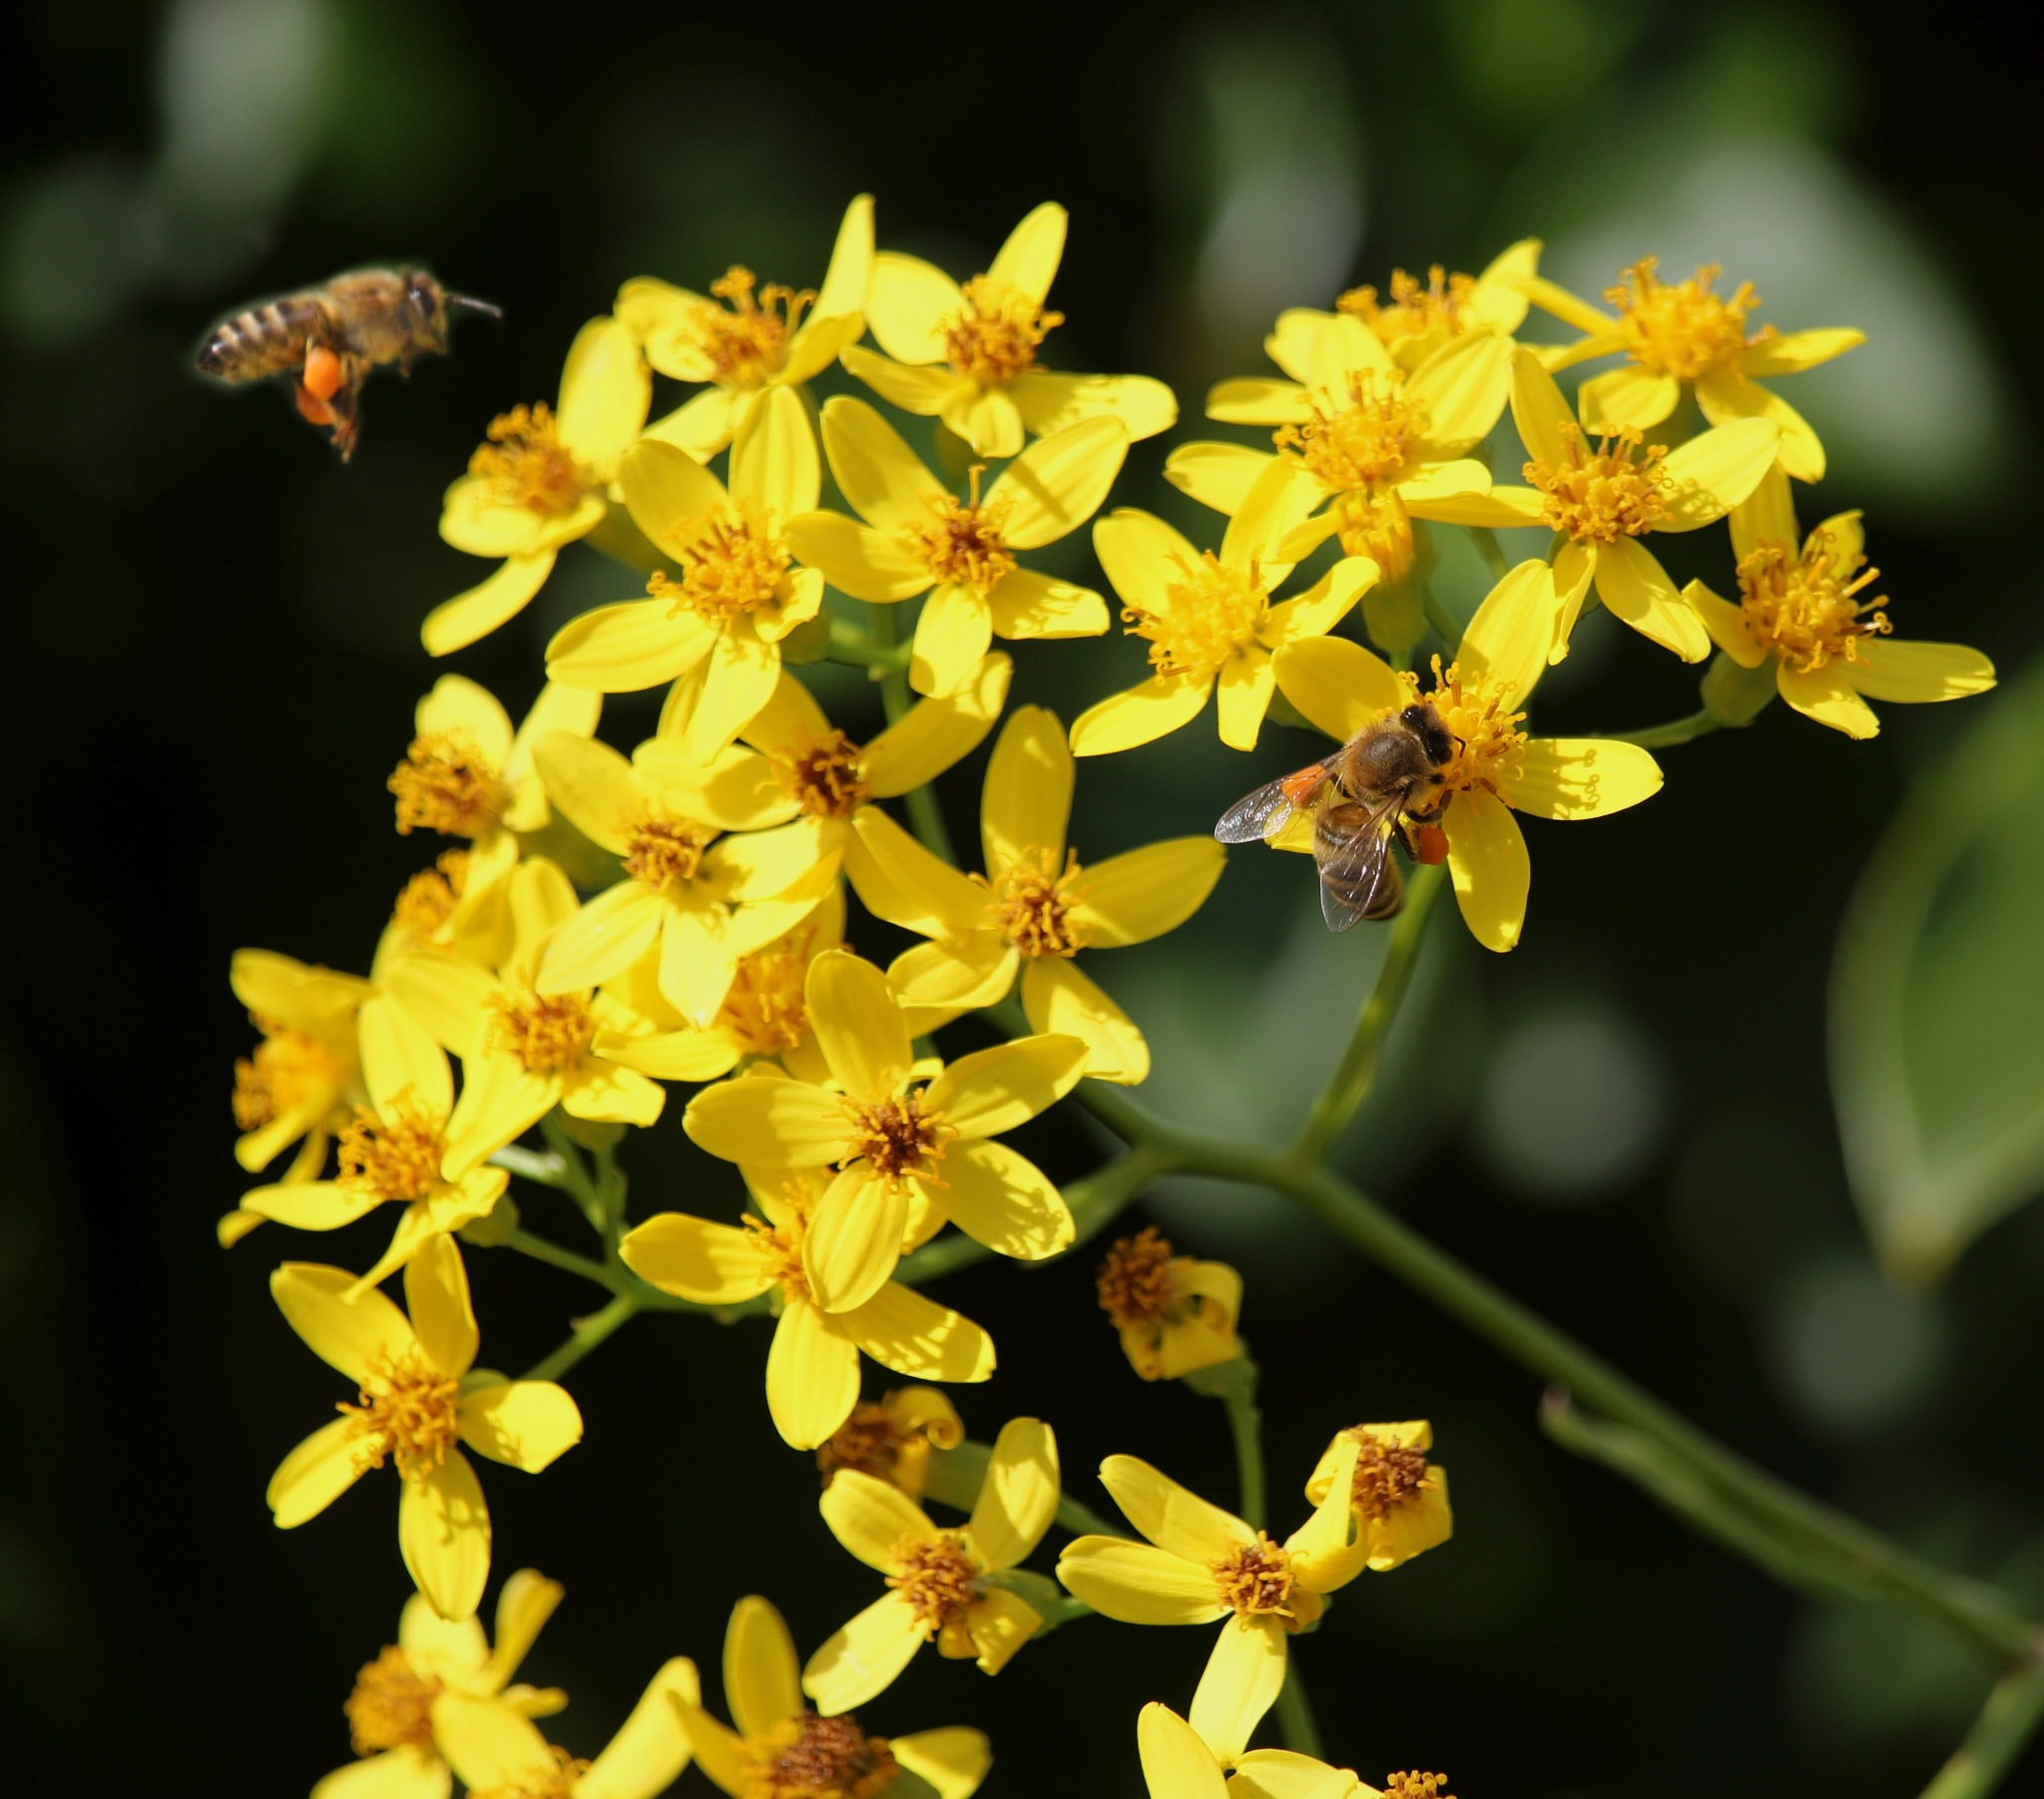 Bees in the flowers by JenC